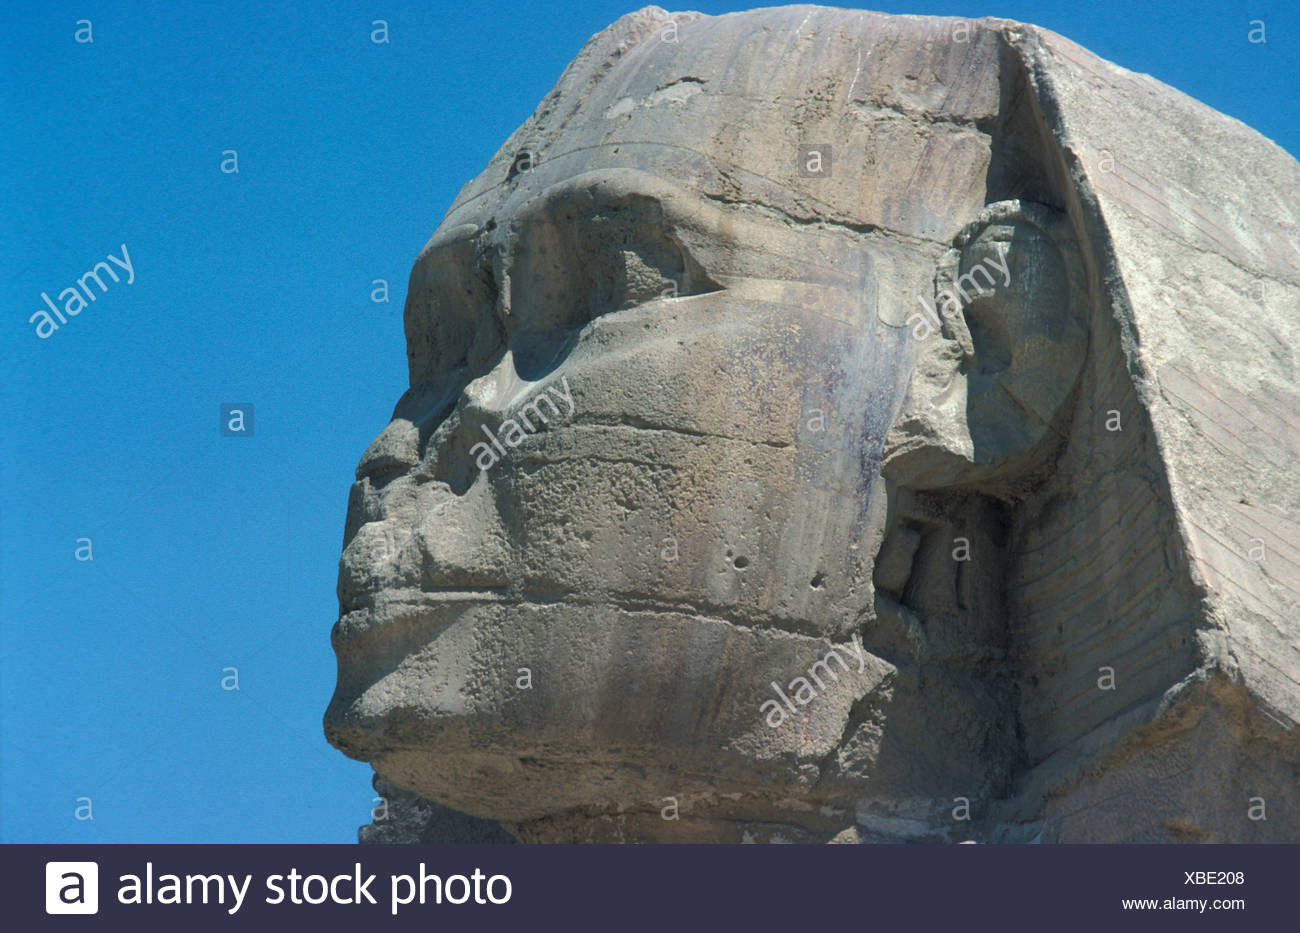 Egypt / Archaeology The Sphinx, Gizeh, Egypt - Stock Image